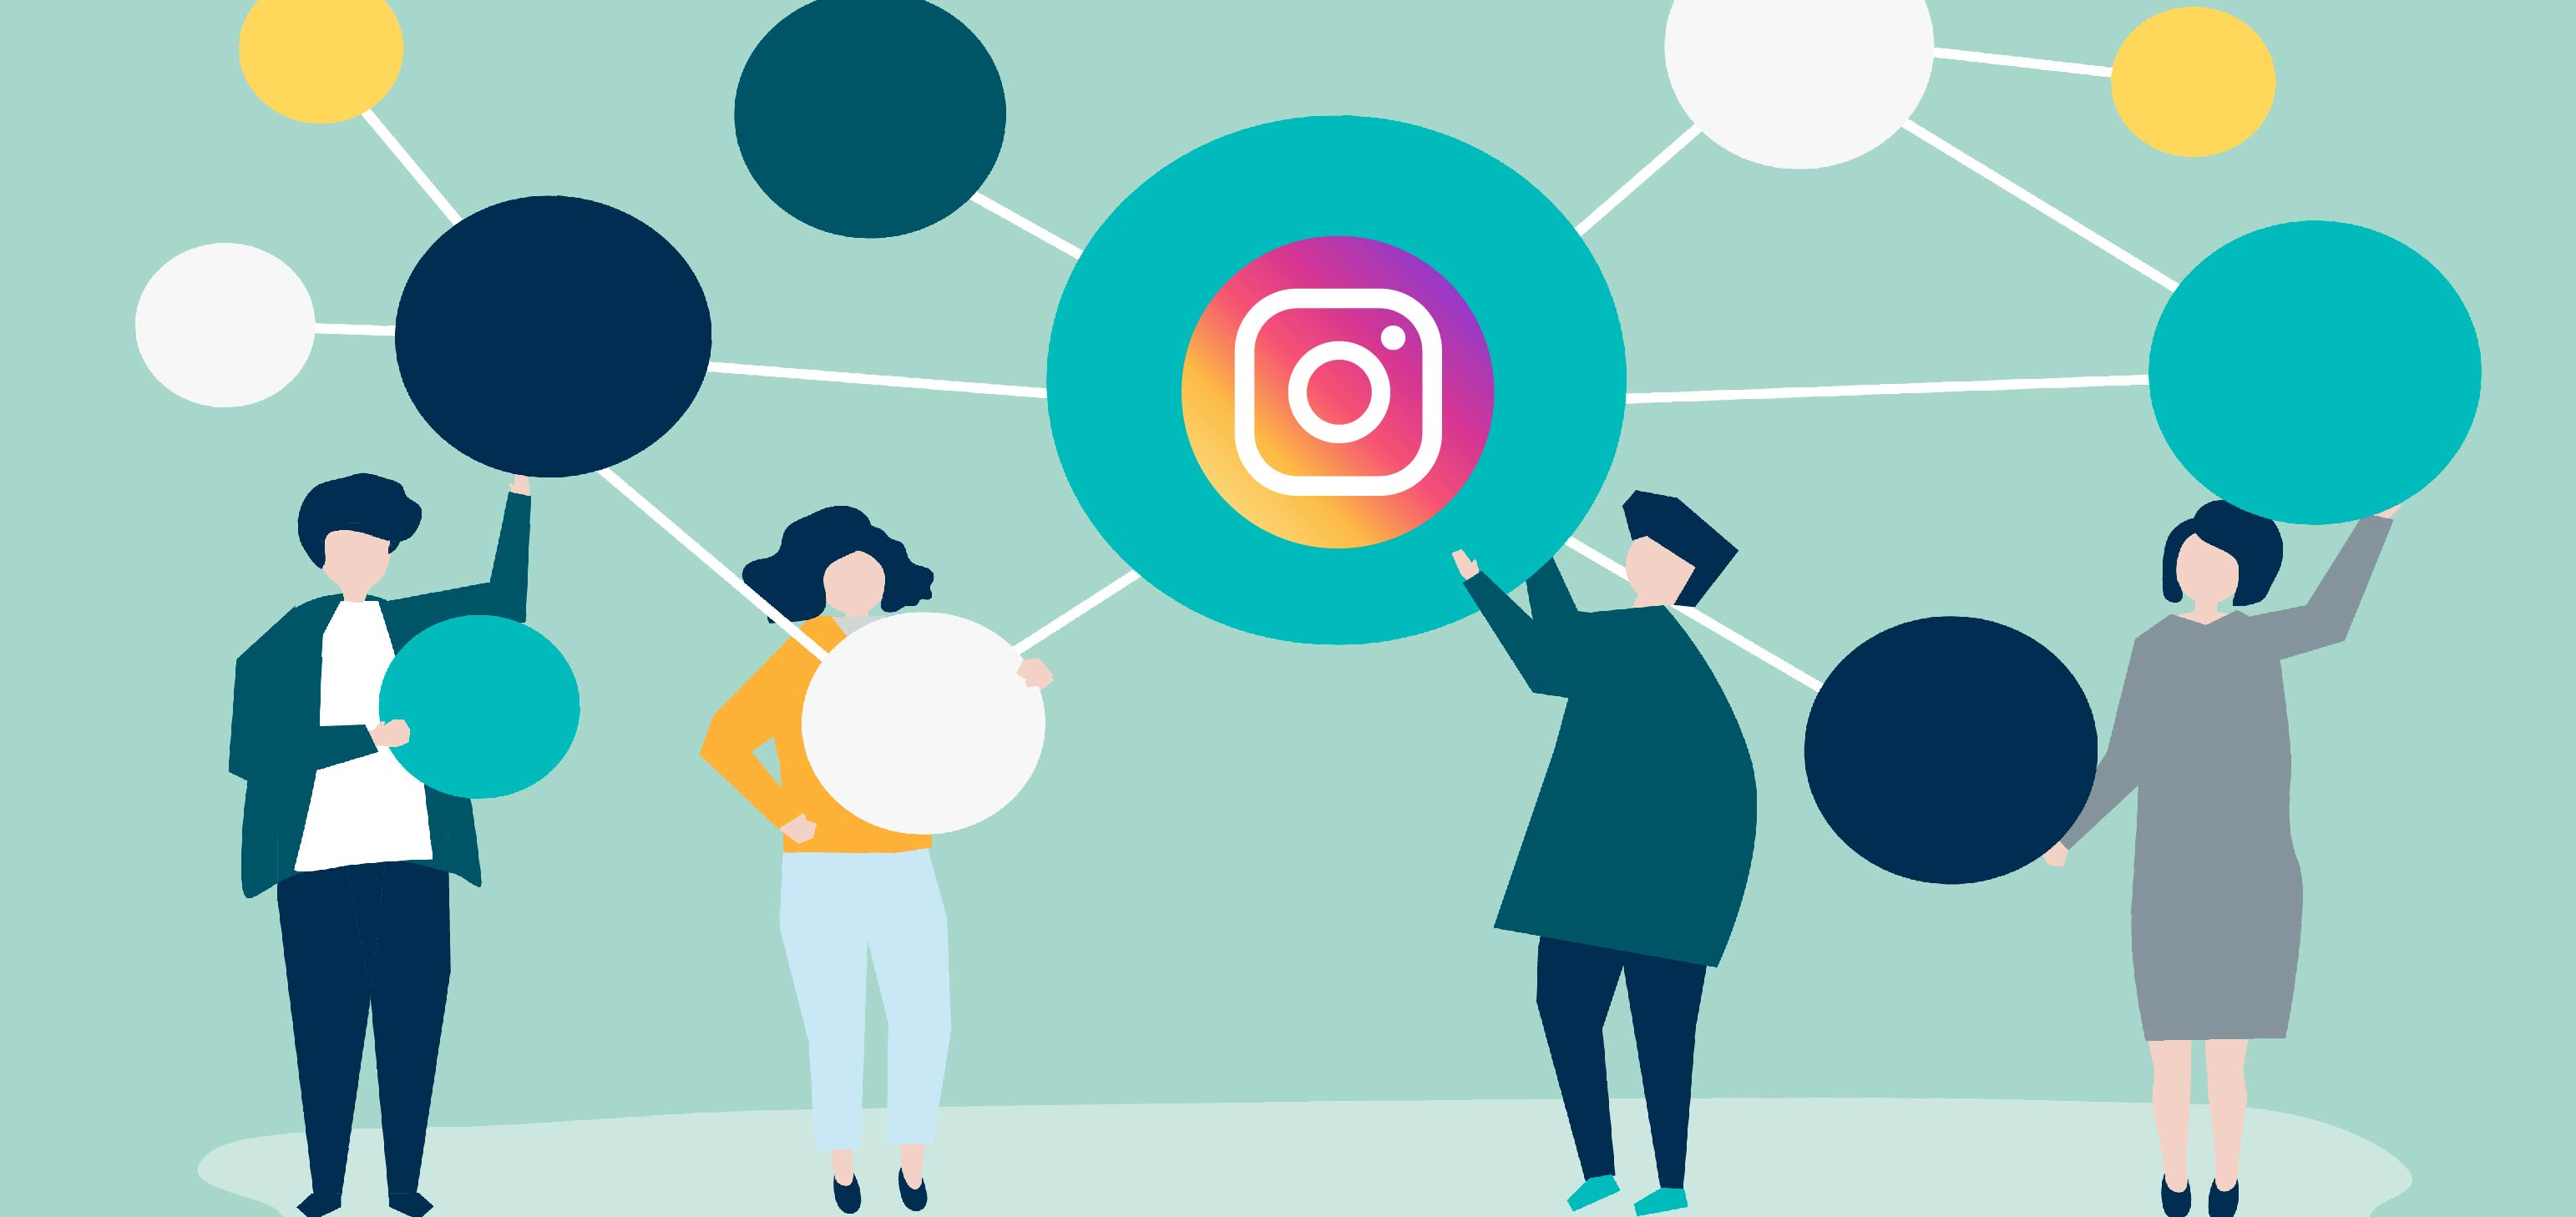 SUEZ France lance son compte instagram